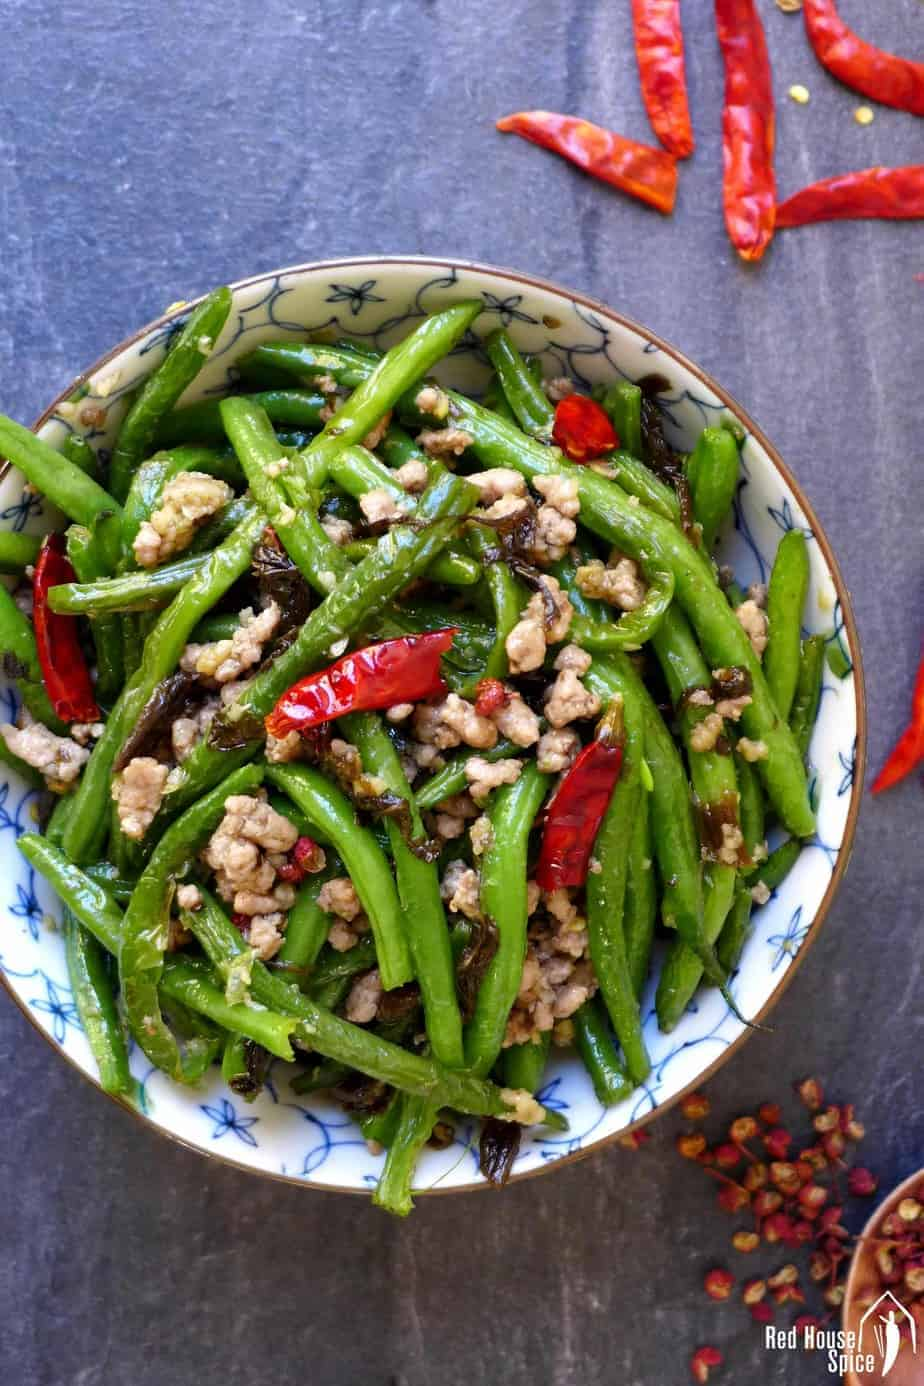 A bowl of dry fried green beans